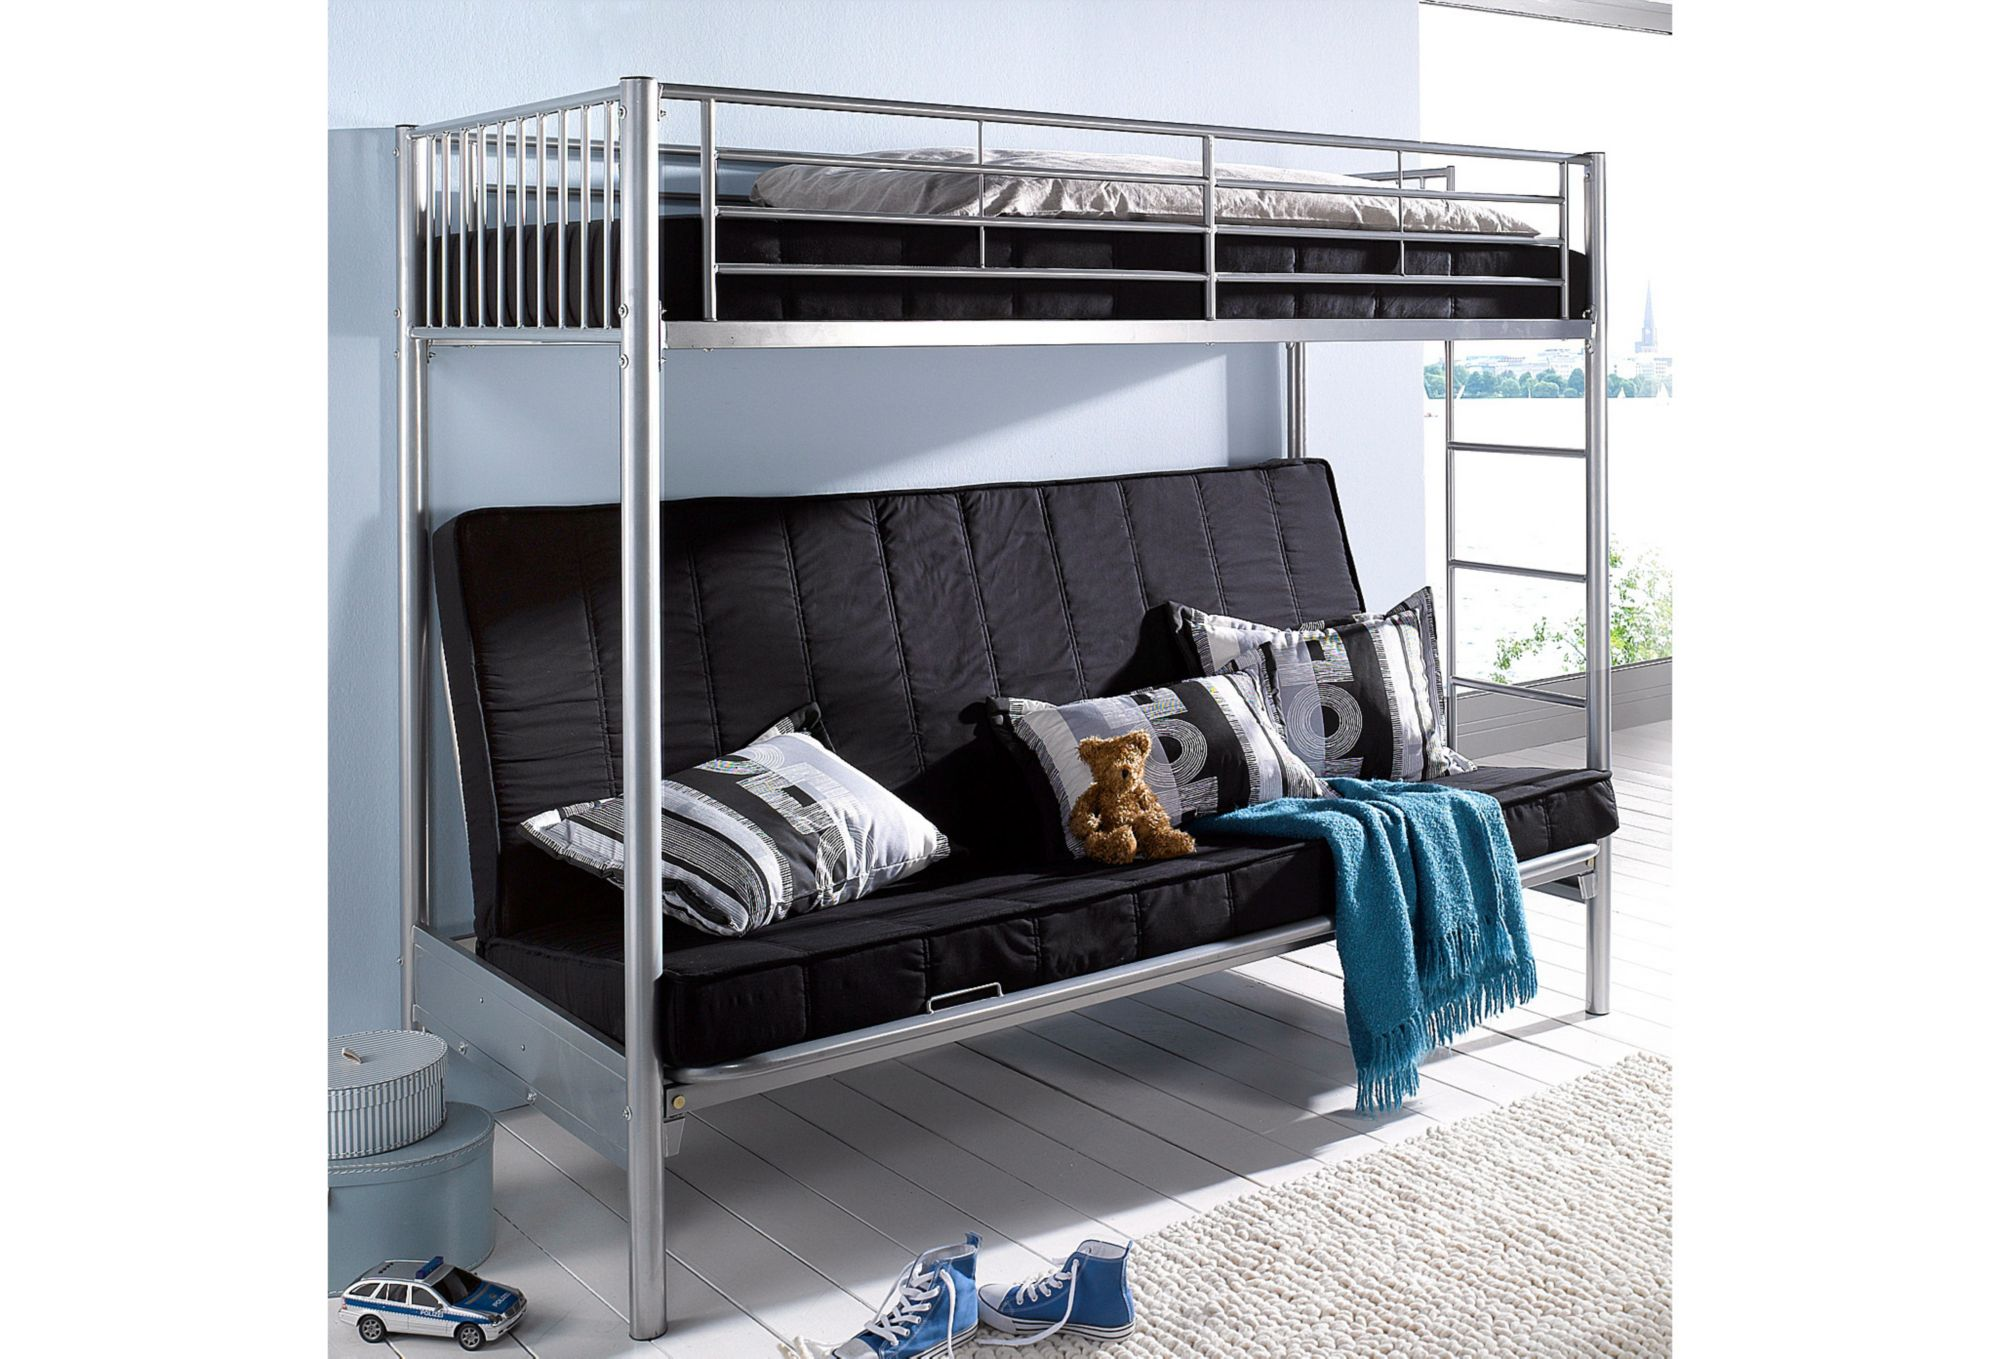 kinderbett g nstig online kaufen beim schwab versand. Black Bedroom Furniture Sets. Home Design Ideas